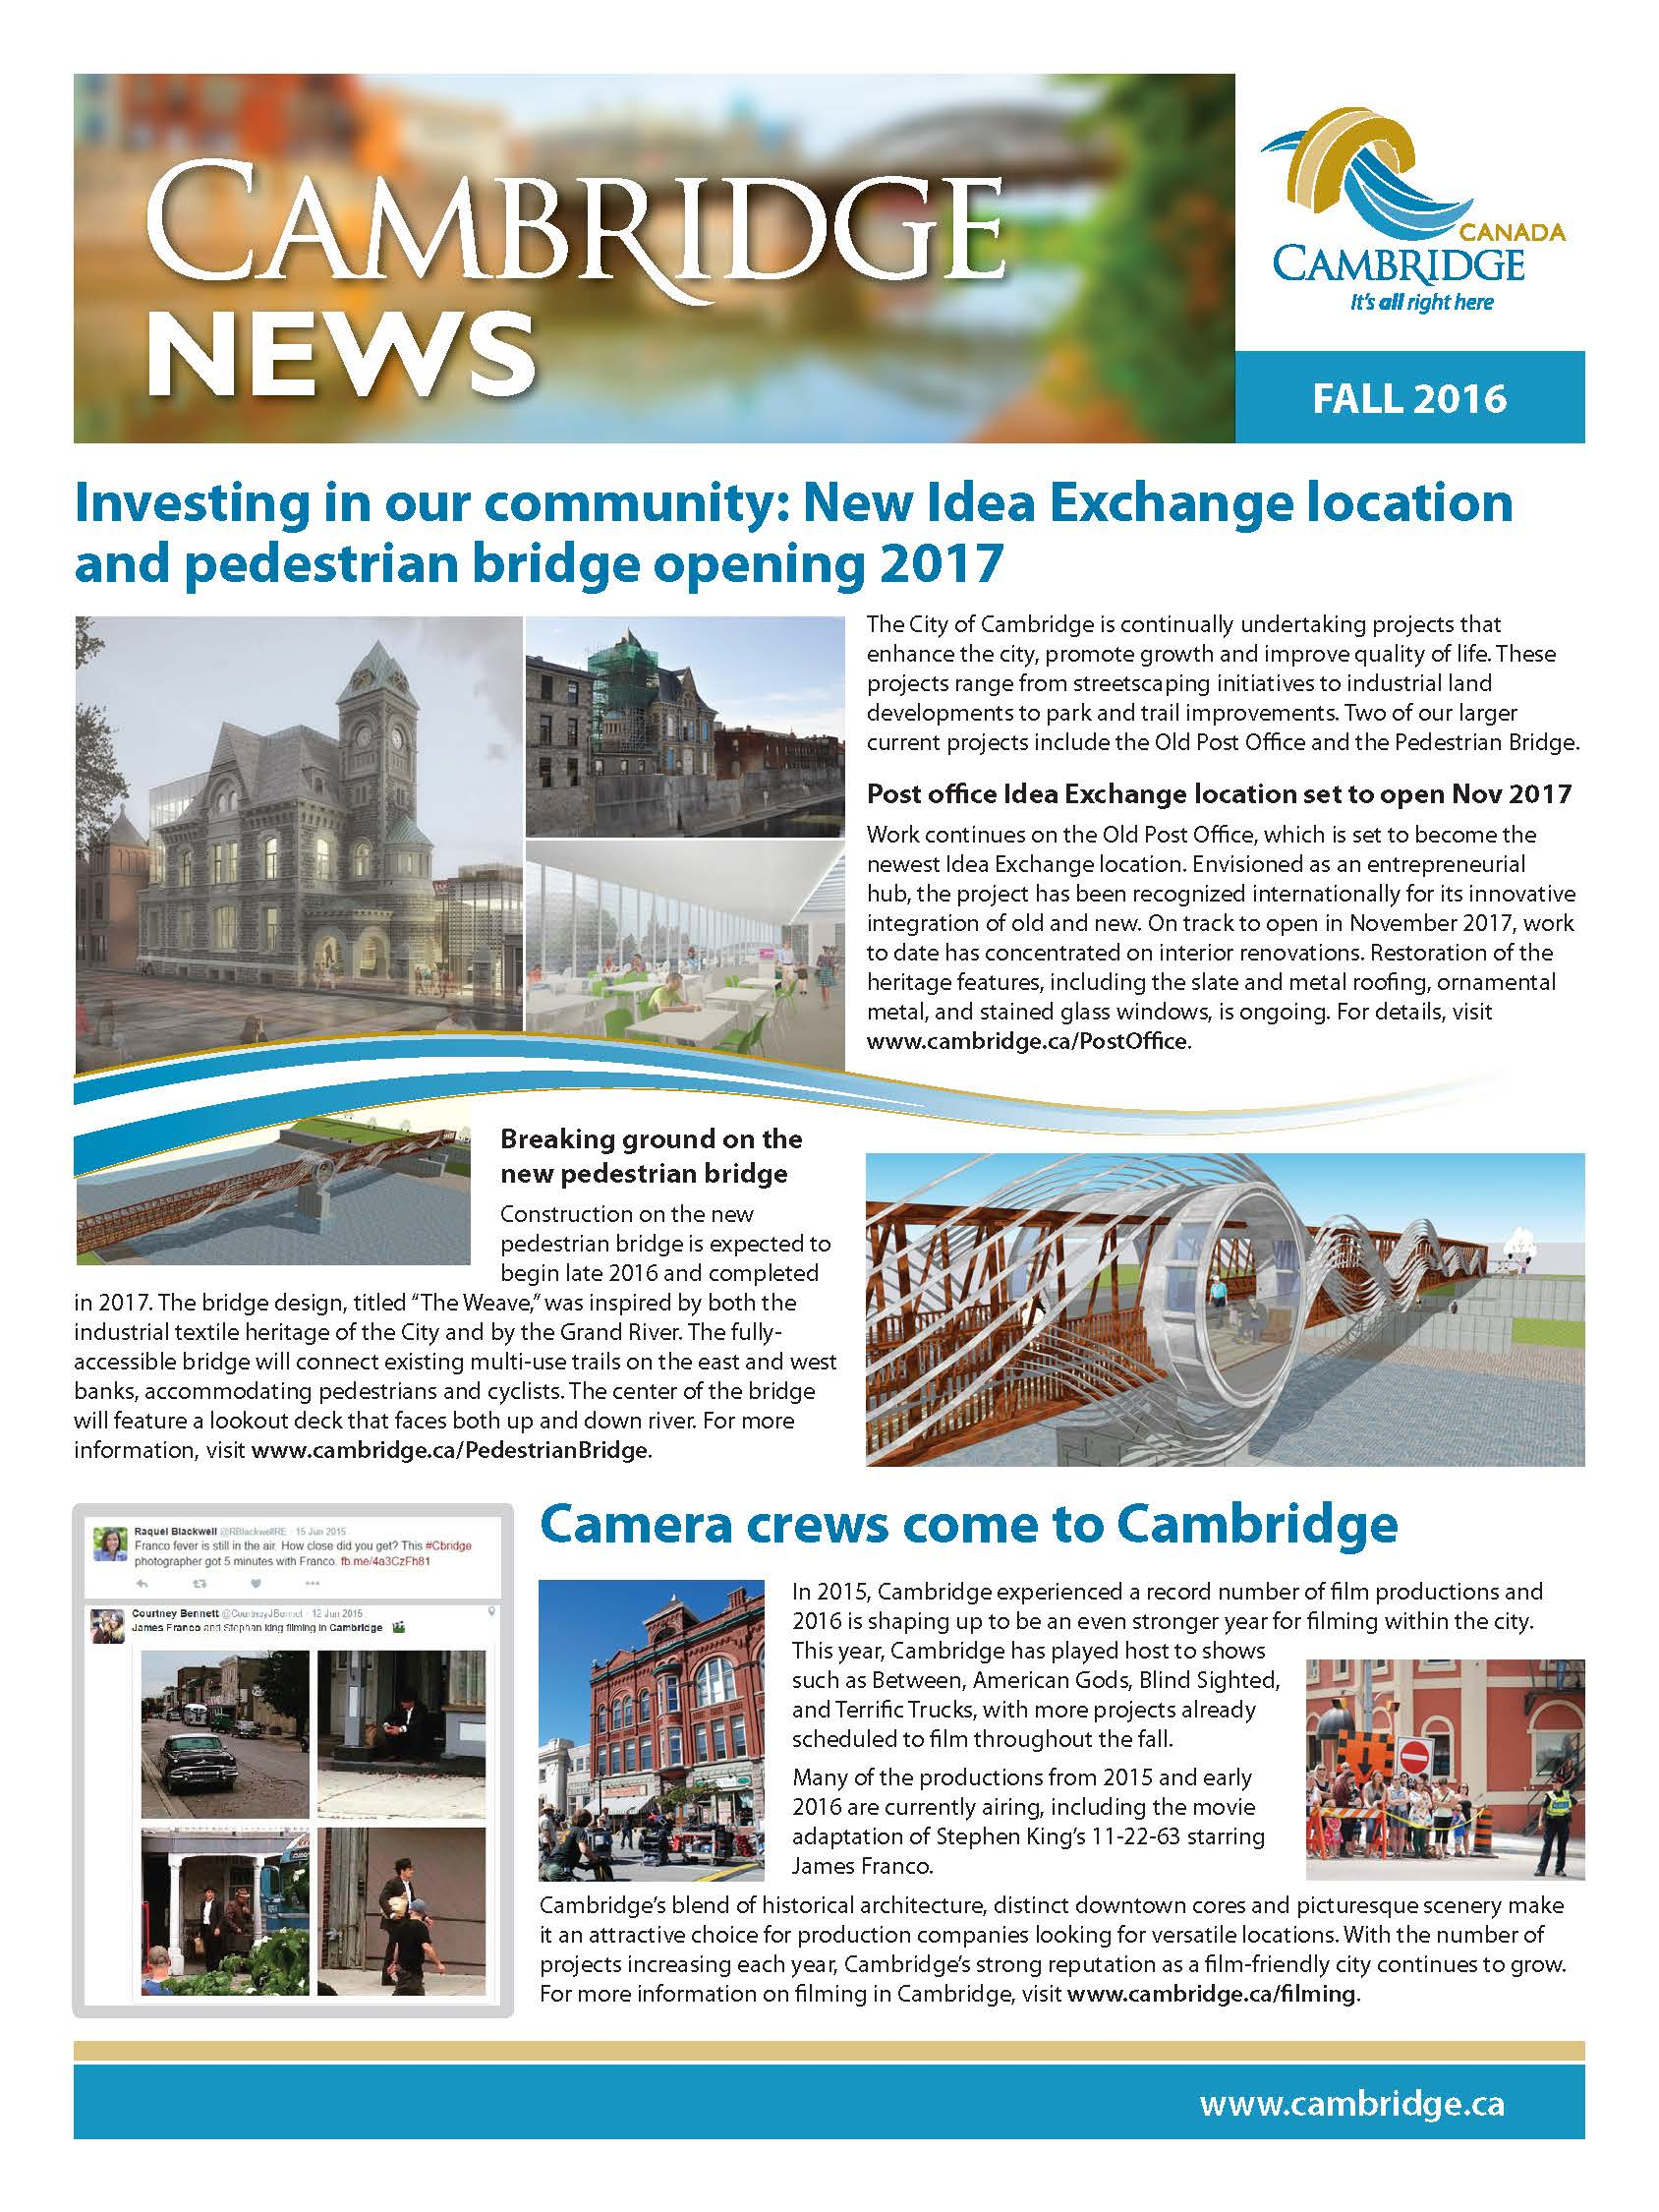 Cover image of Cambridge News Fall 2016